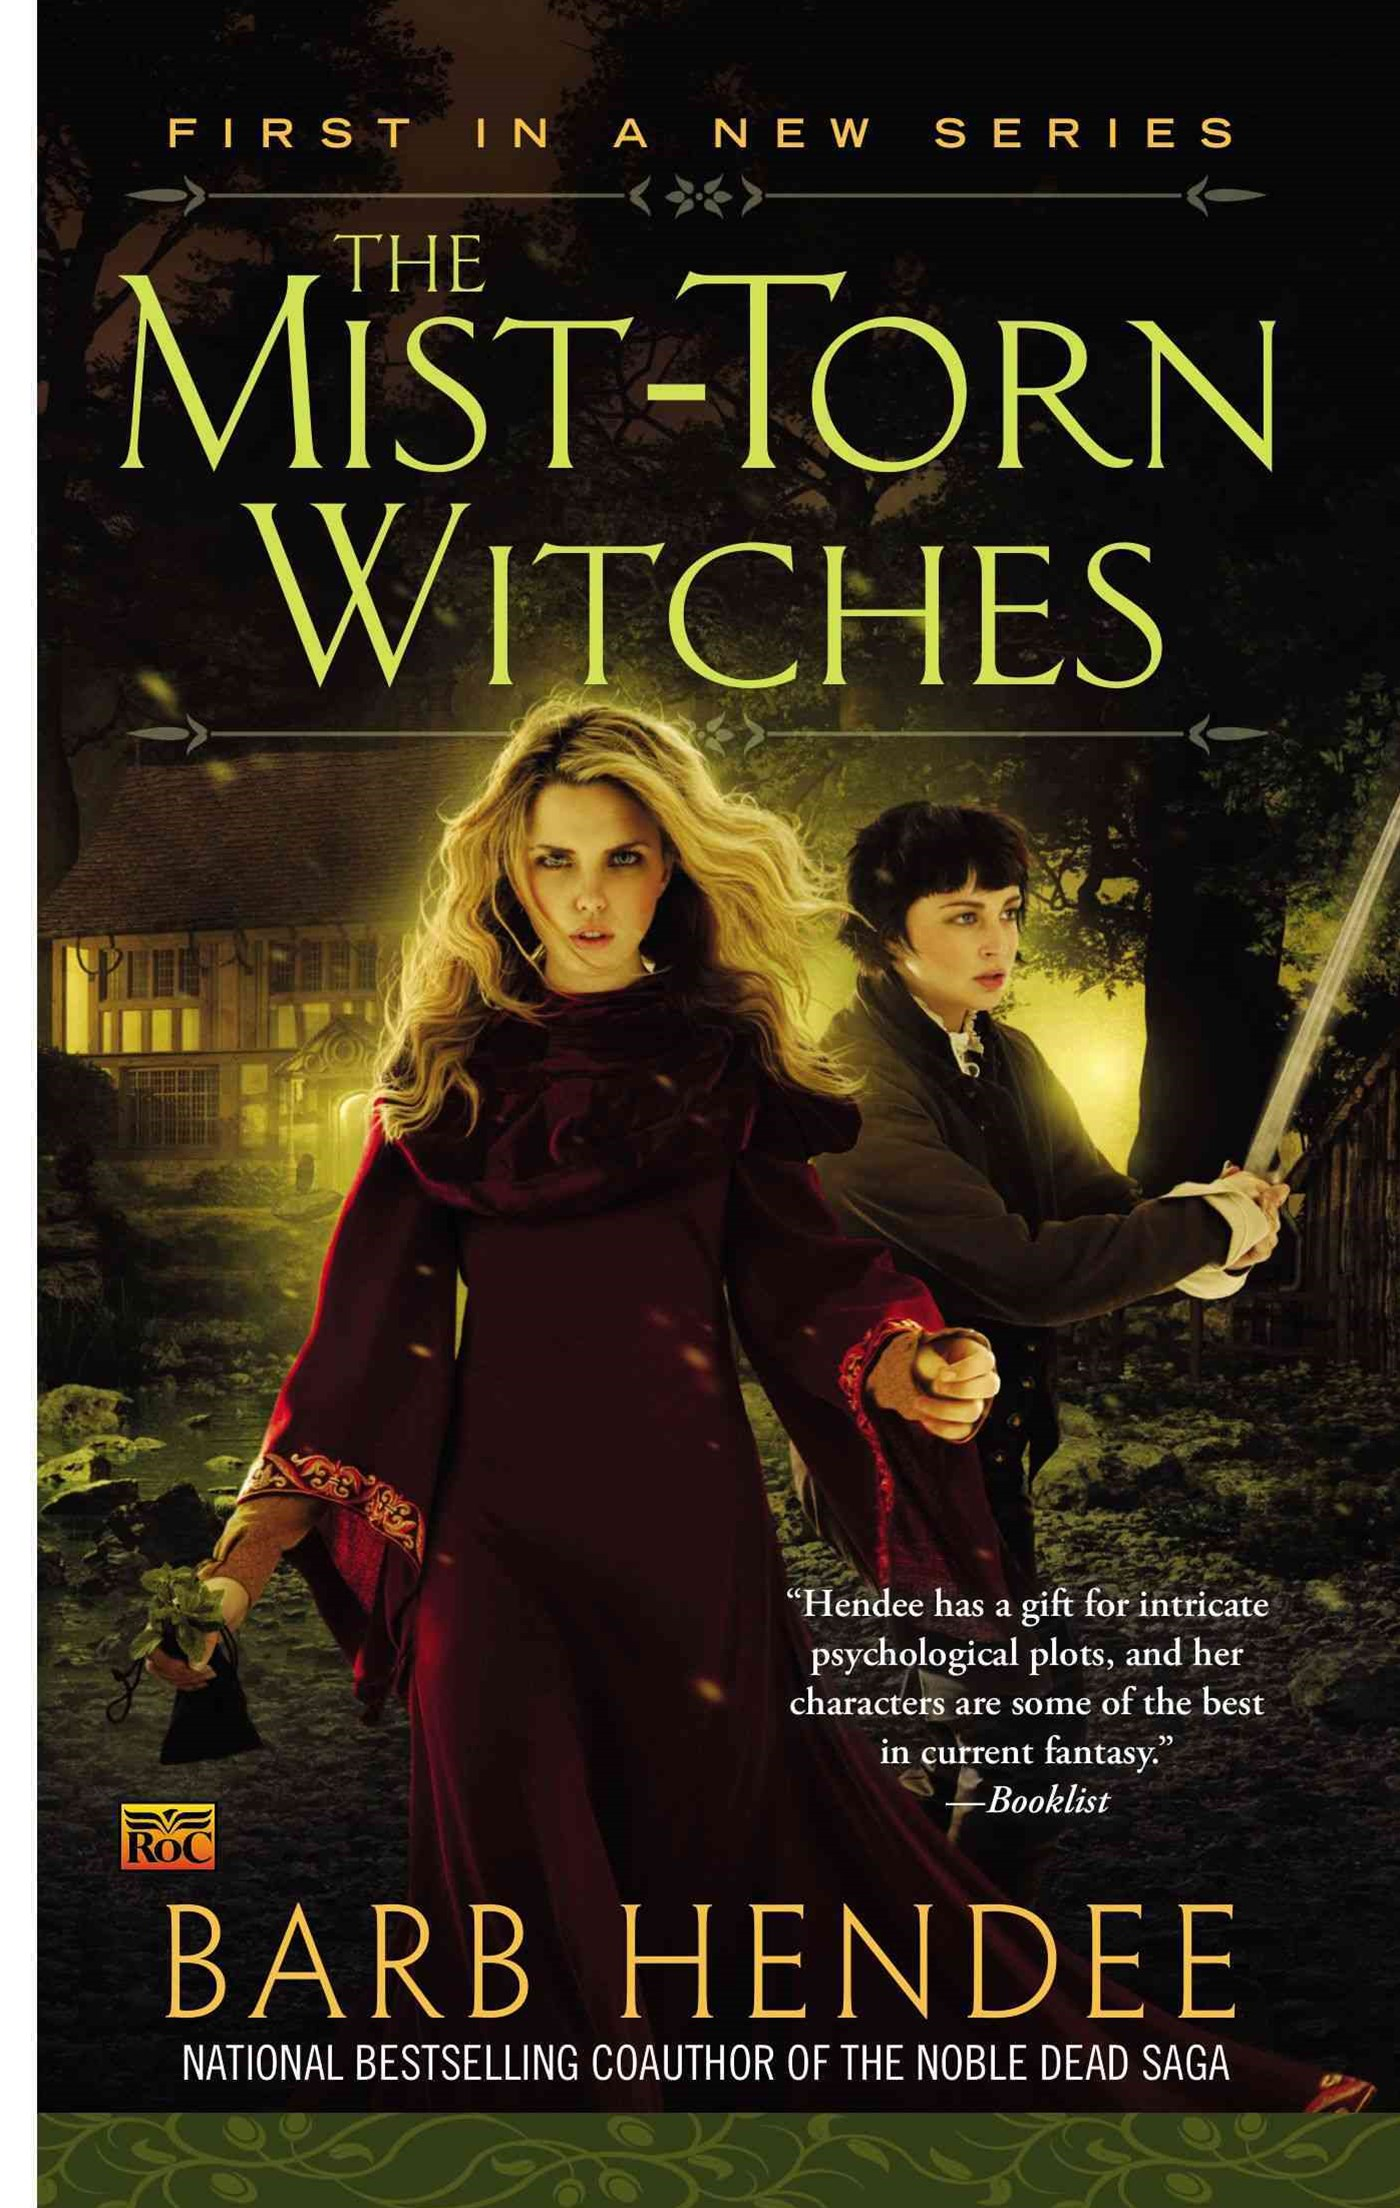 The Mist-Torn Witches: Mist-Torn Witches Book 1